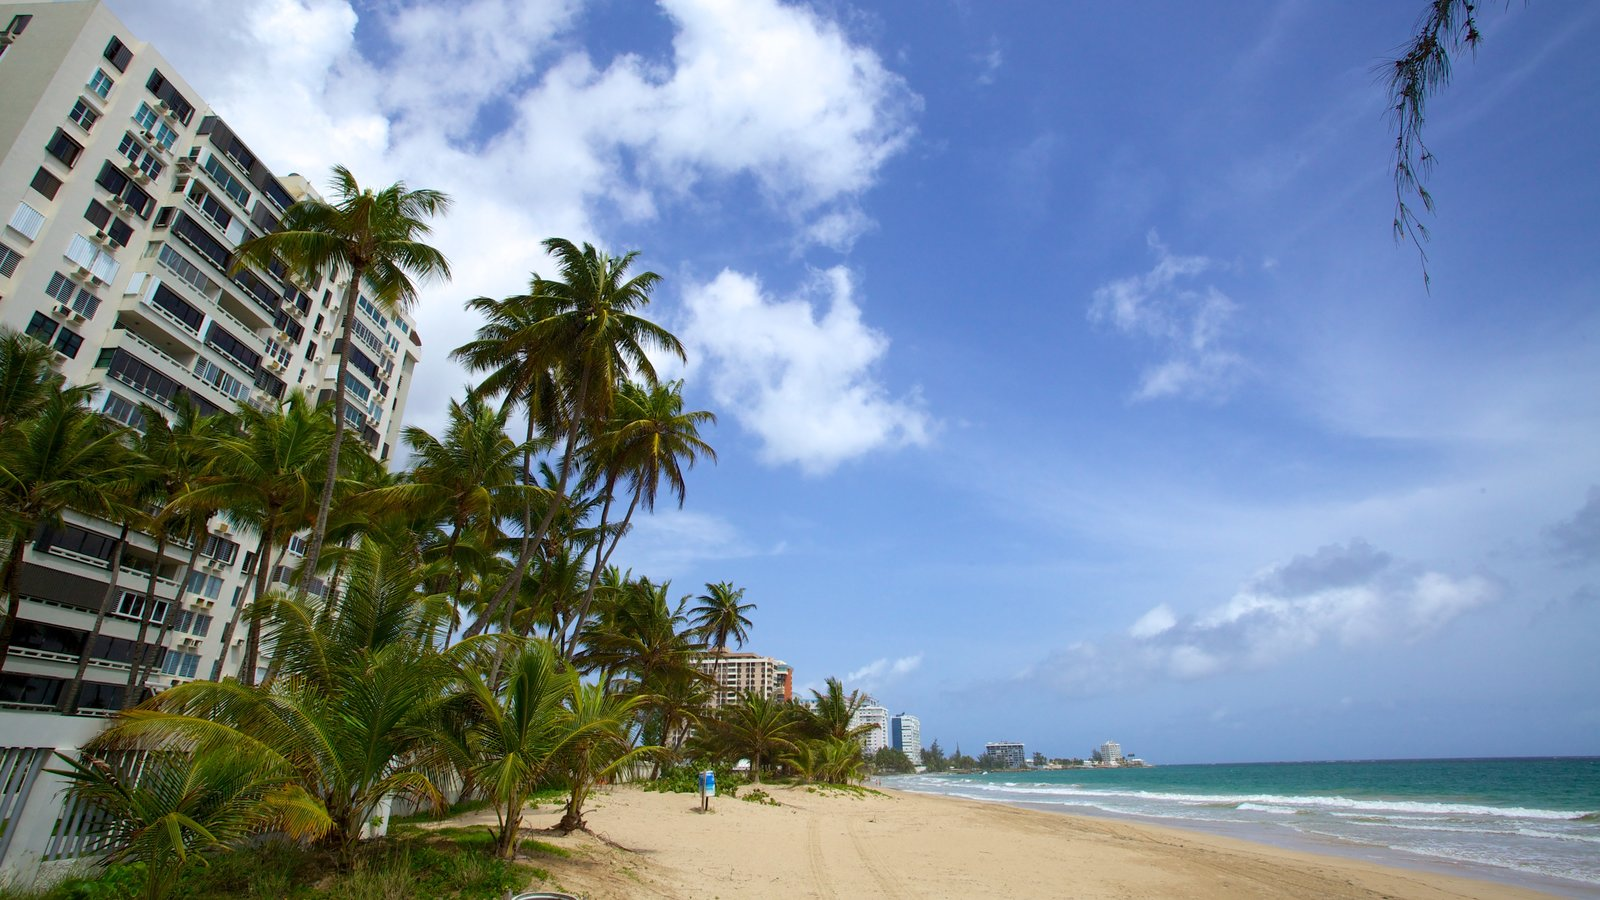 Isla Verde Beach which includes a hotel, a coastal town and a beach